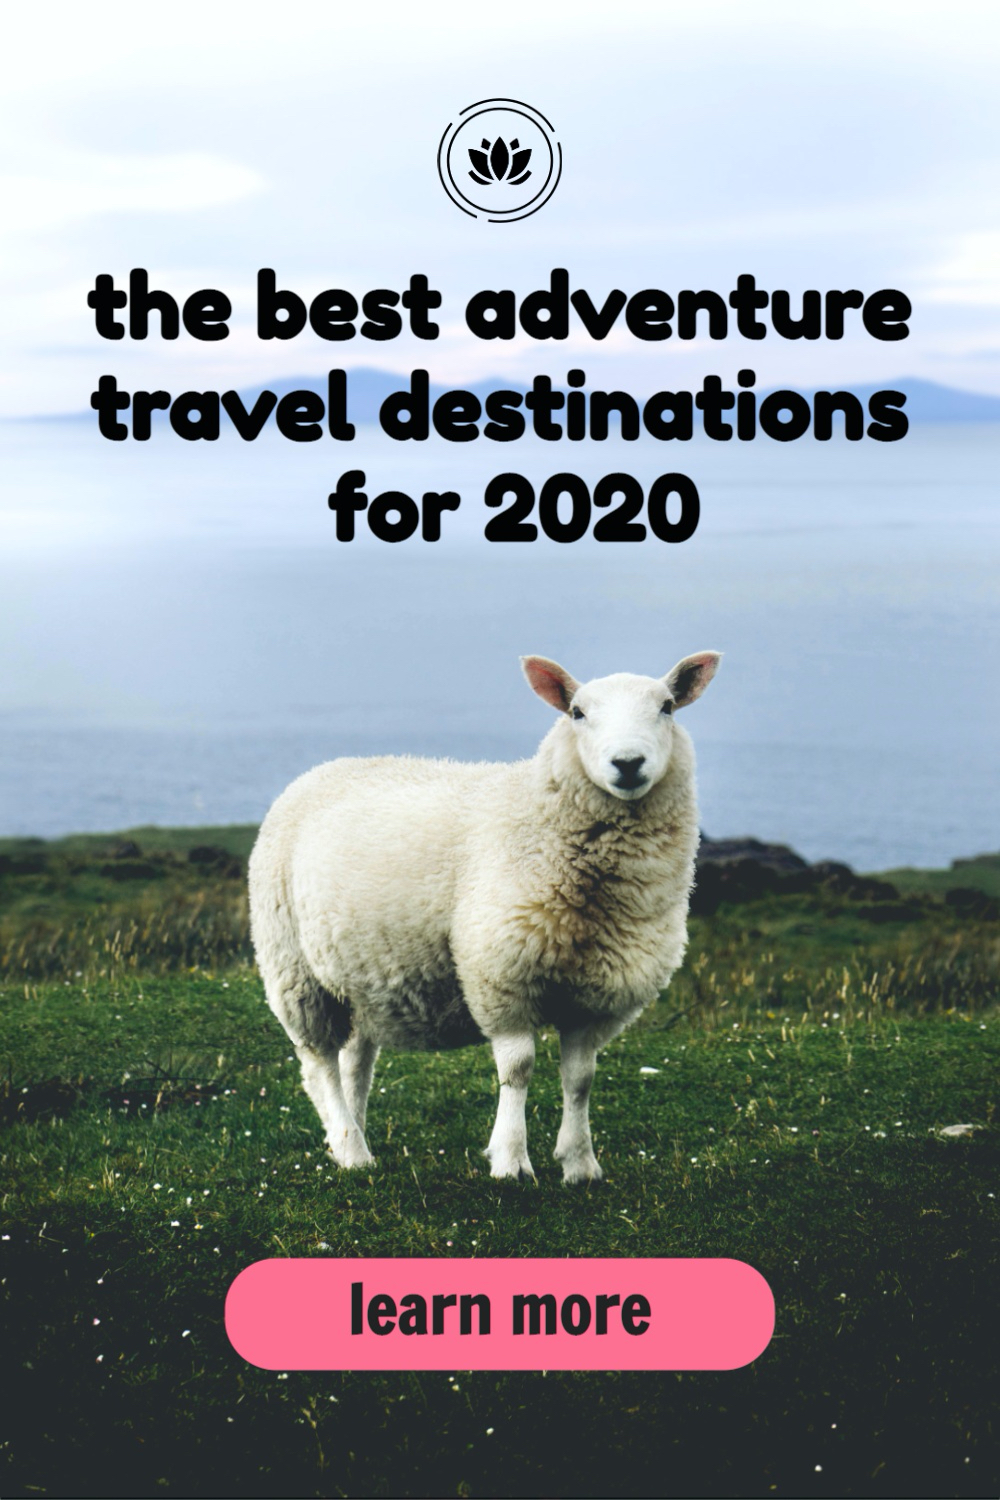 Travel Pinterest Pin image created by Tailwind using a Tailwind Create design template in 2021.